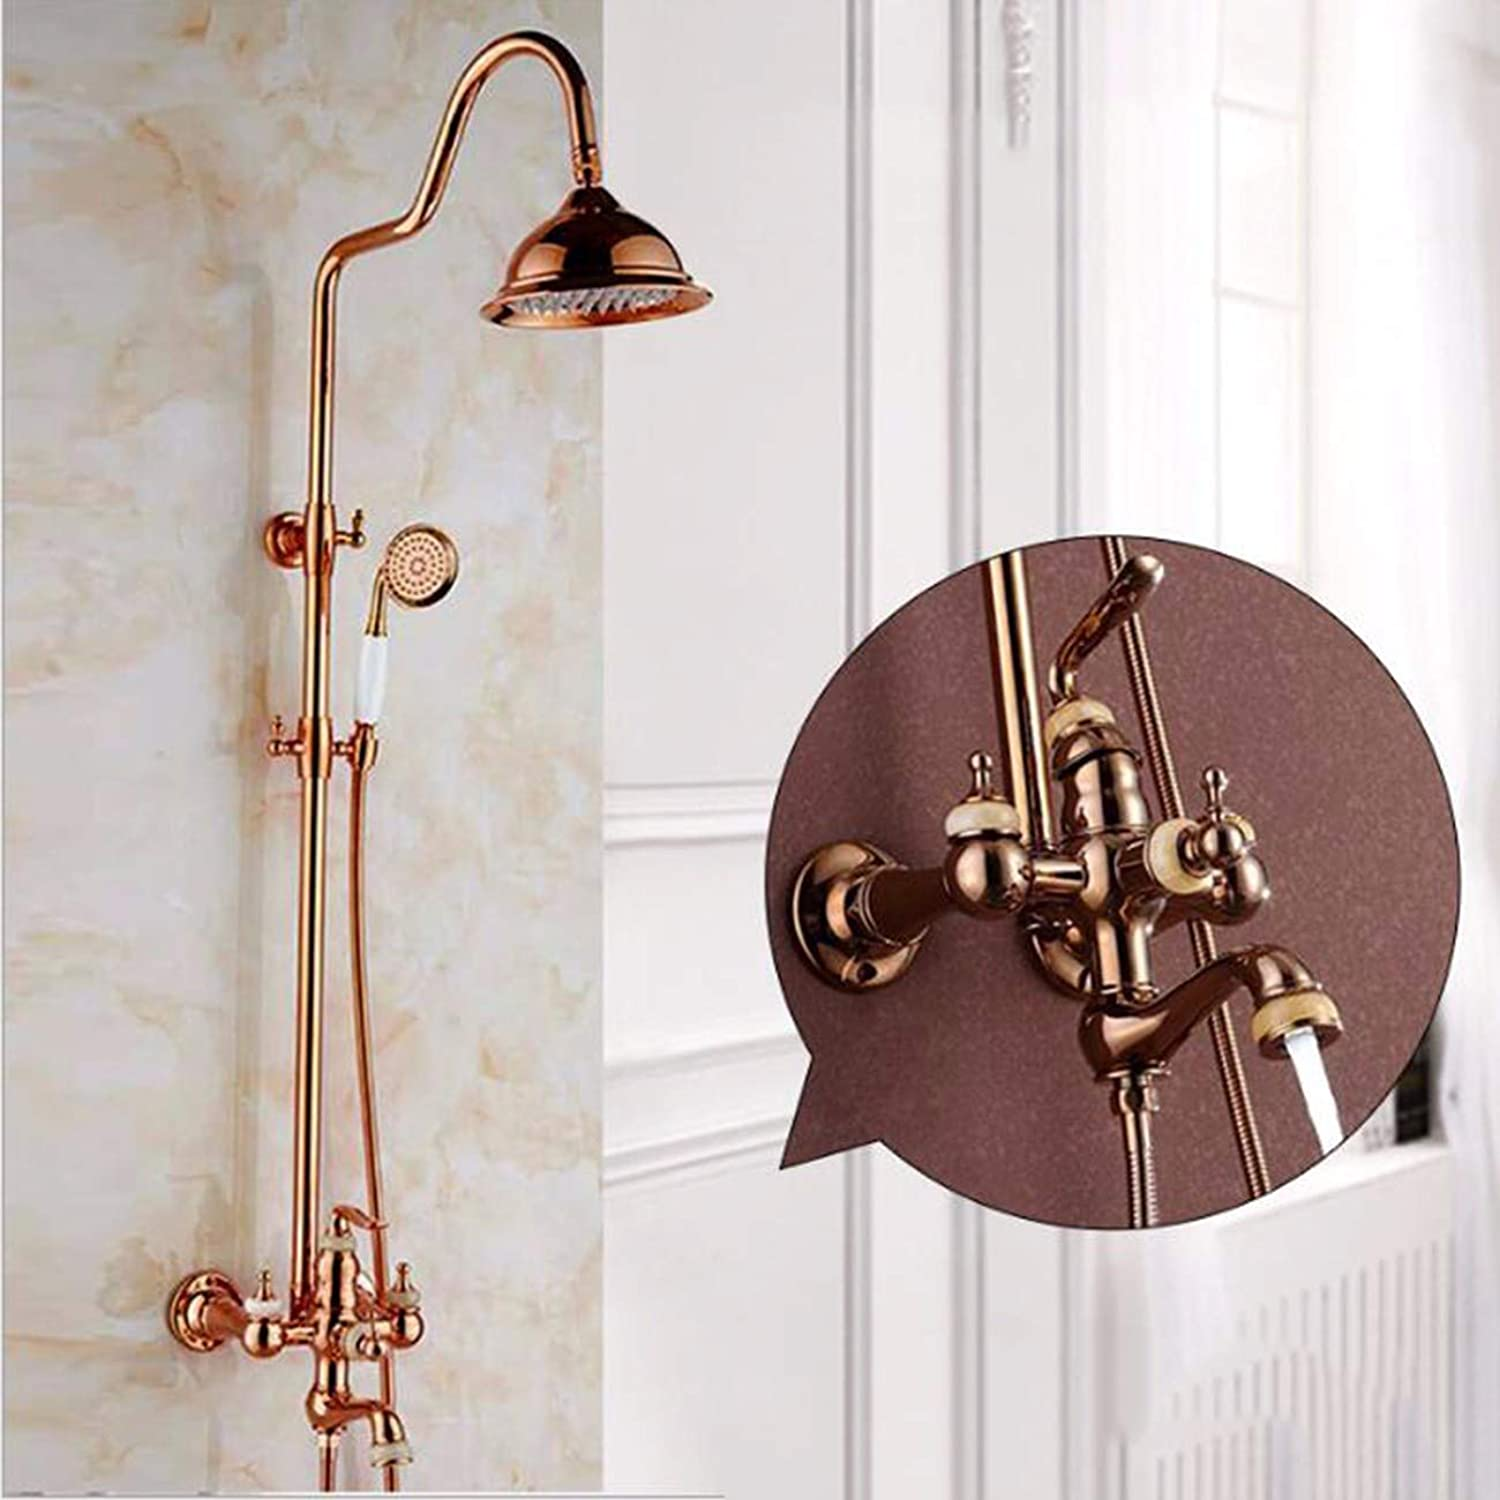 All-Copper European gold-Plated Antique Jade Diamond Two-Handed Wheel pink gold Shower Suit,H